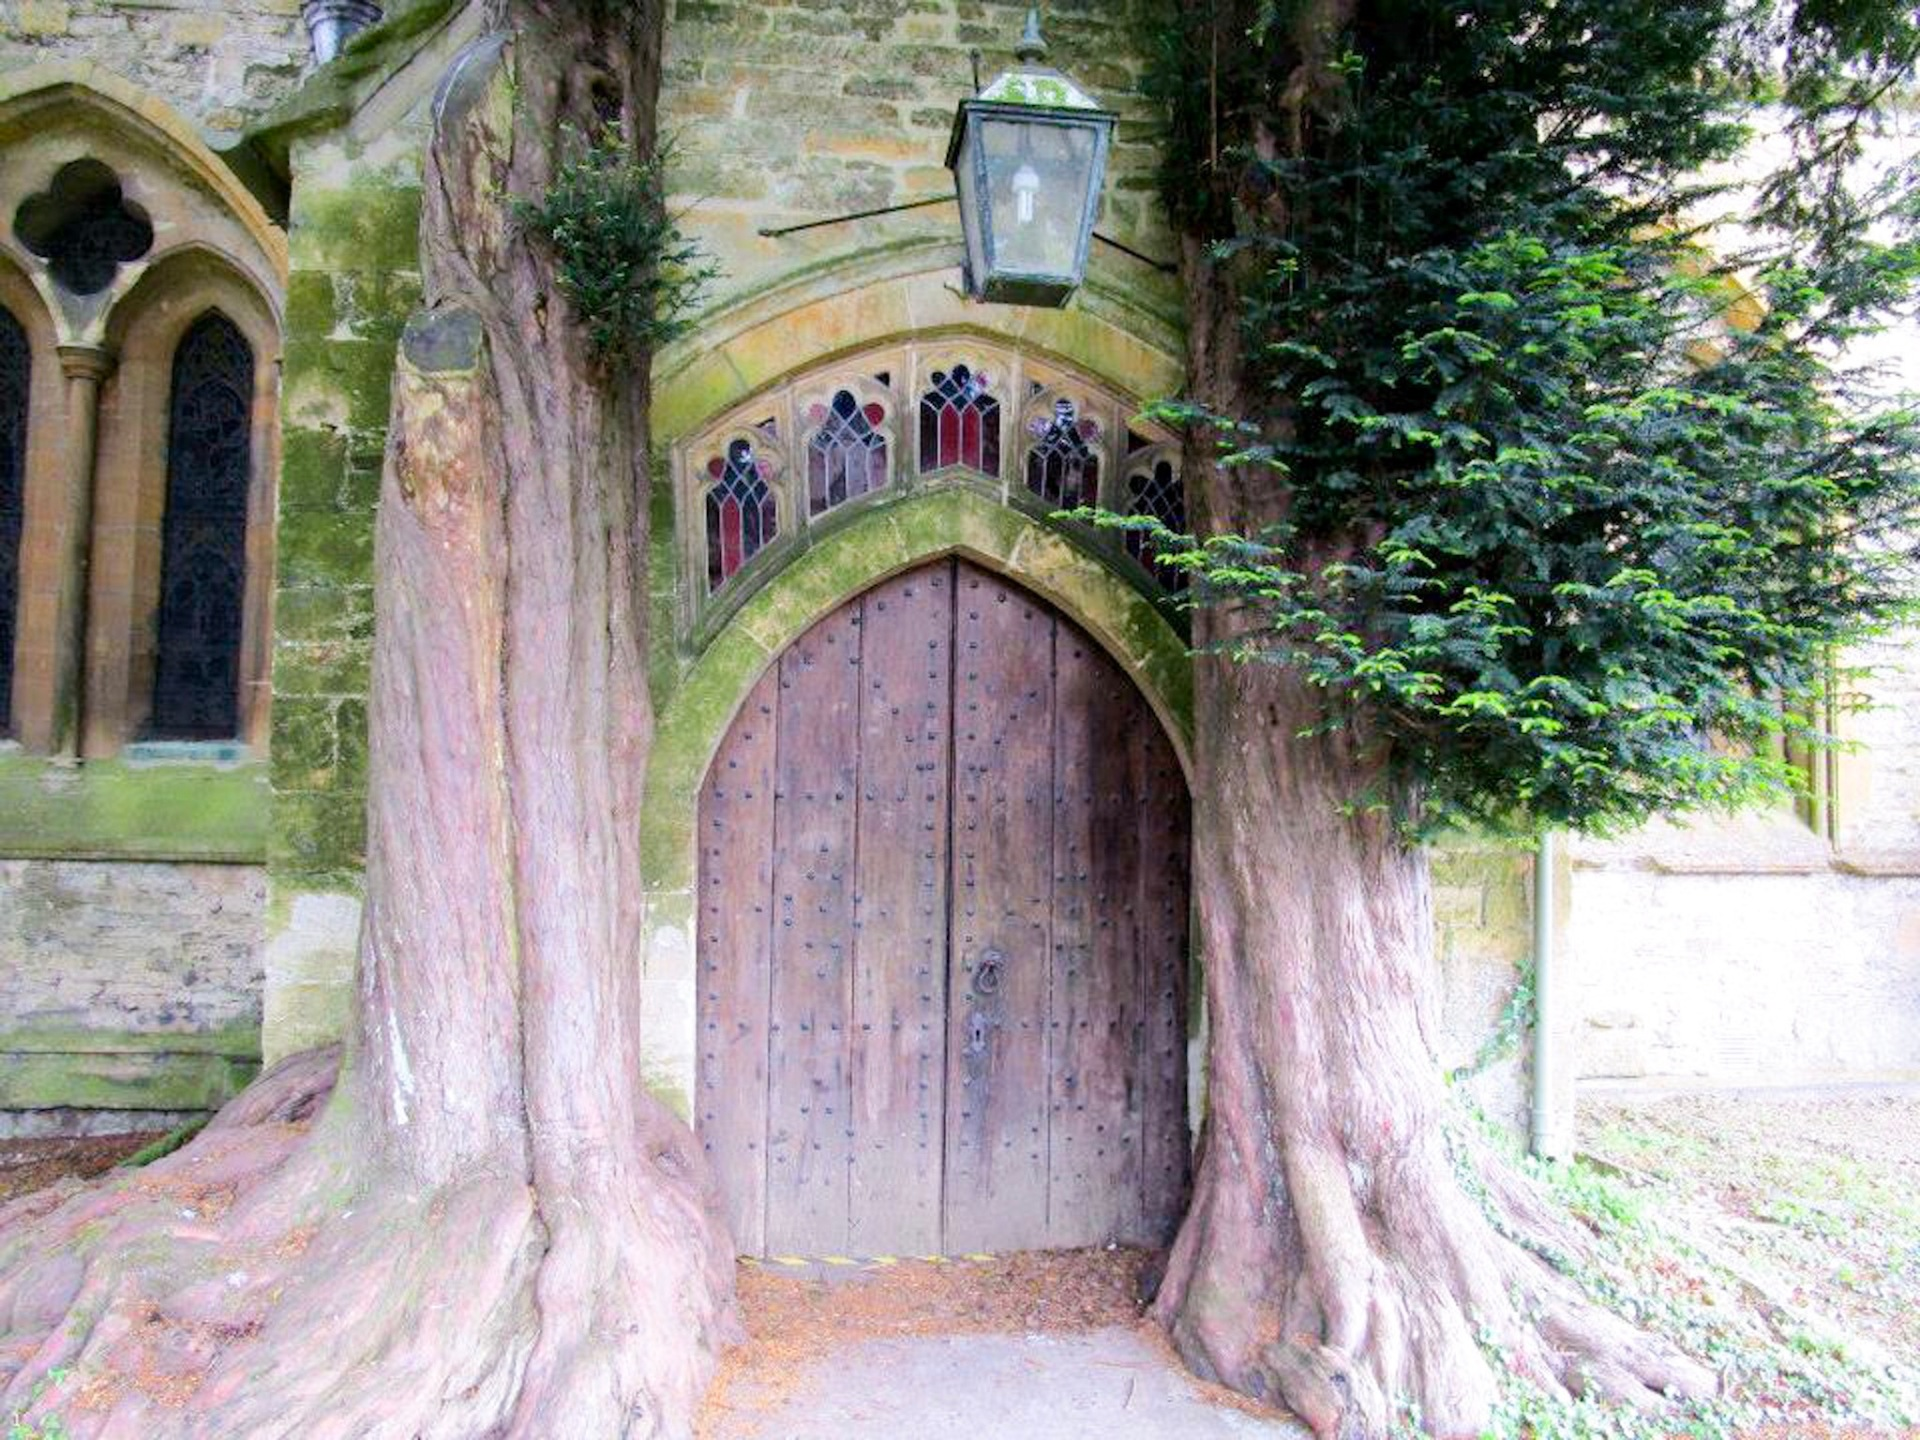 Trees in front of church door, Stow on the Wold